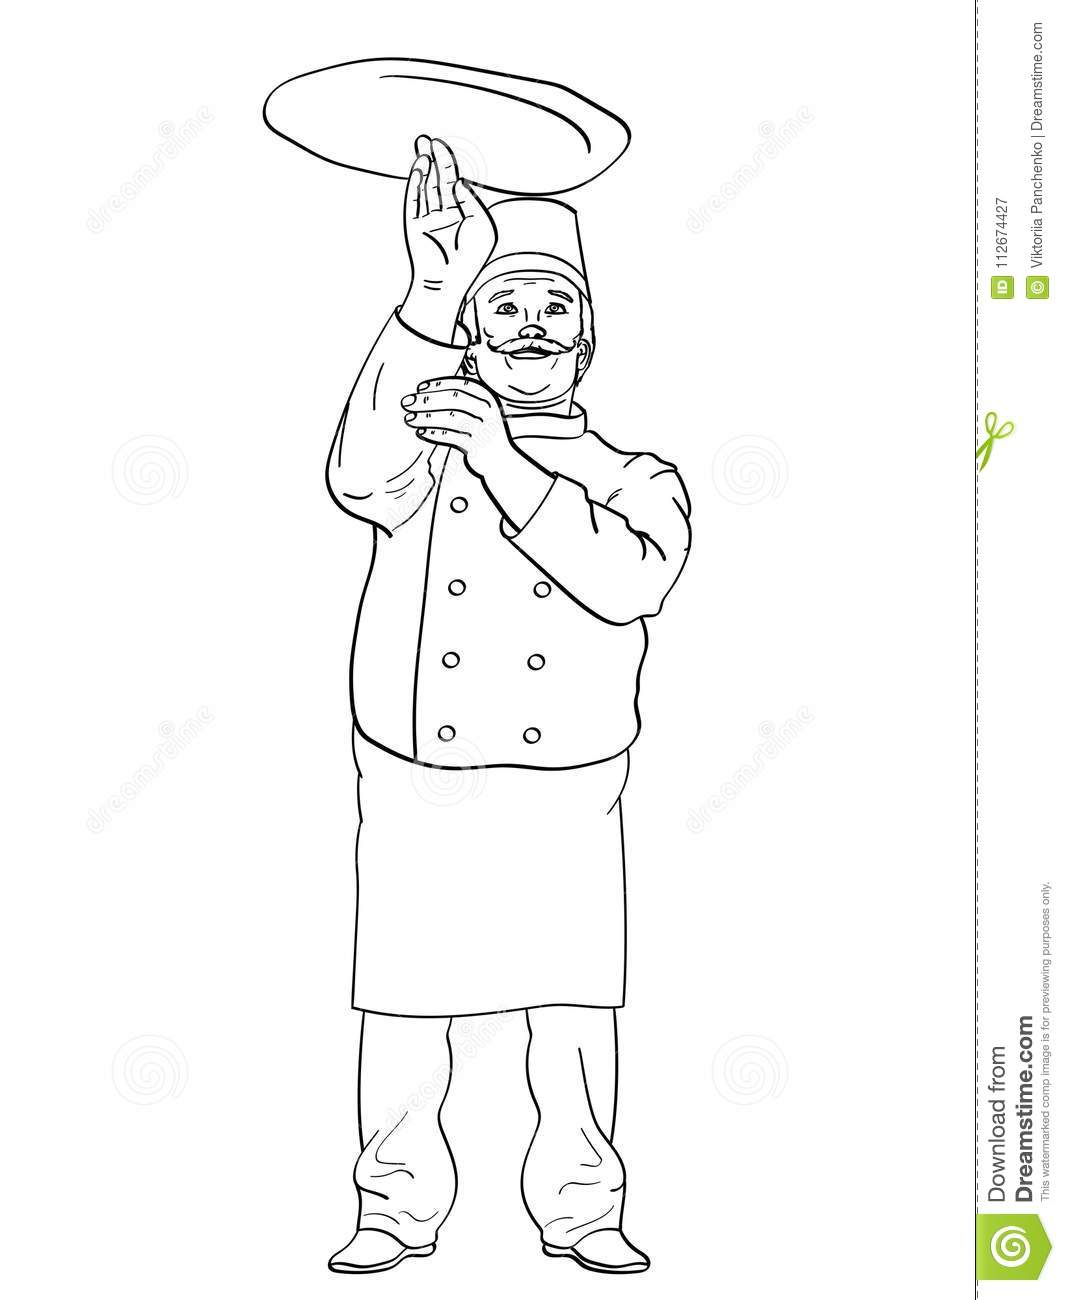 Man Cook Pizza Chef Tossing Dough Comic Book Style Imitation